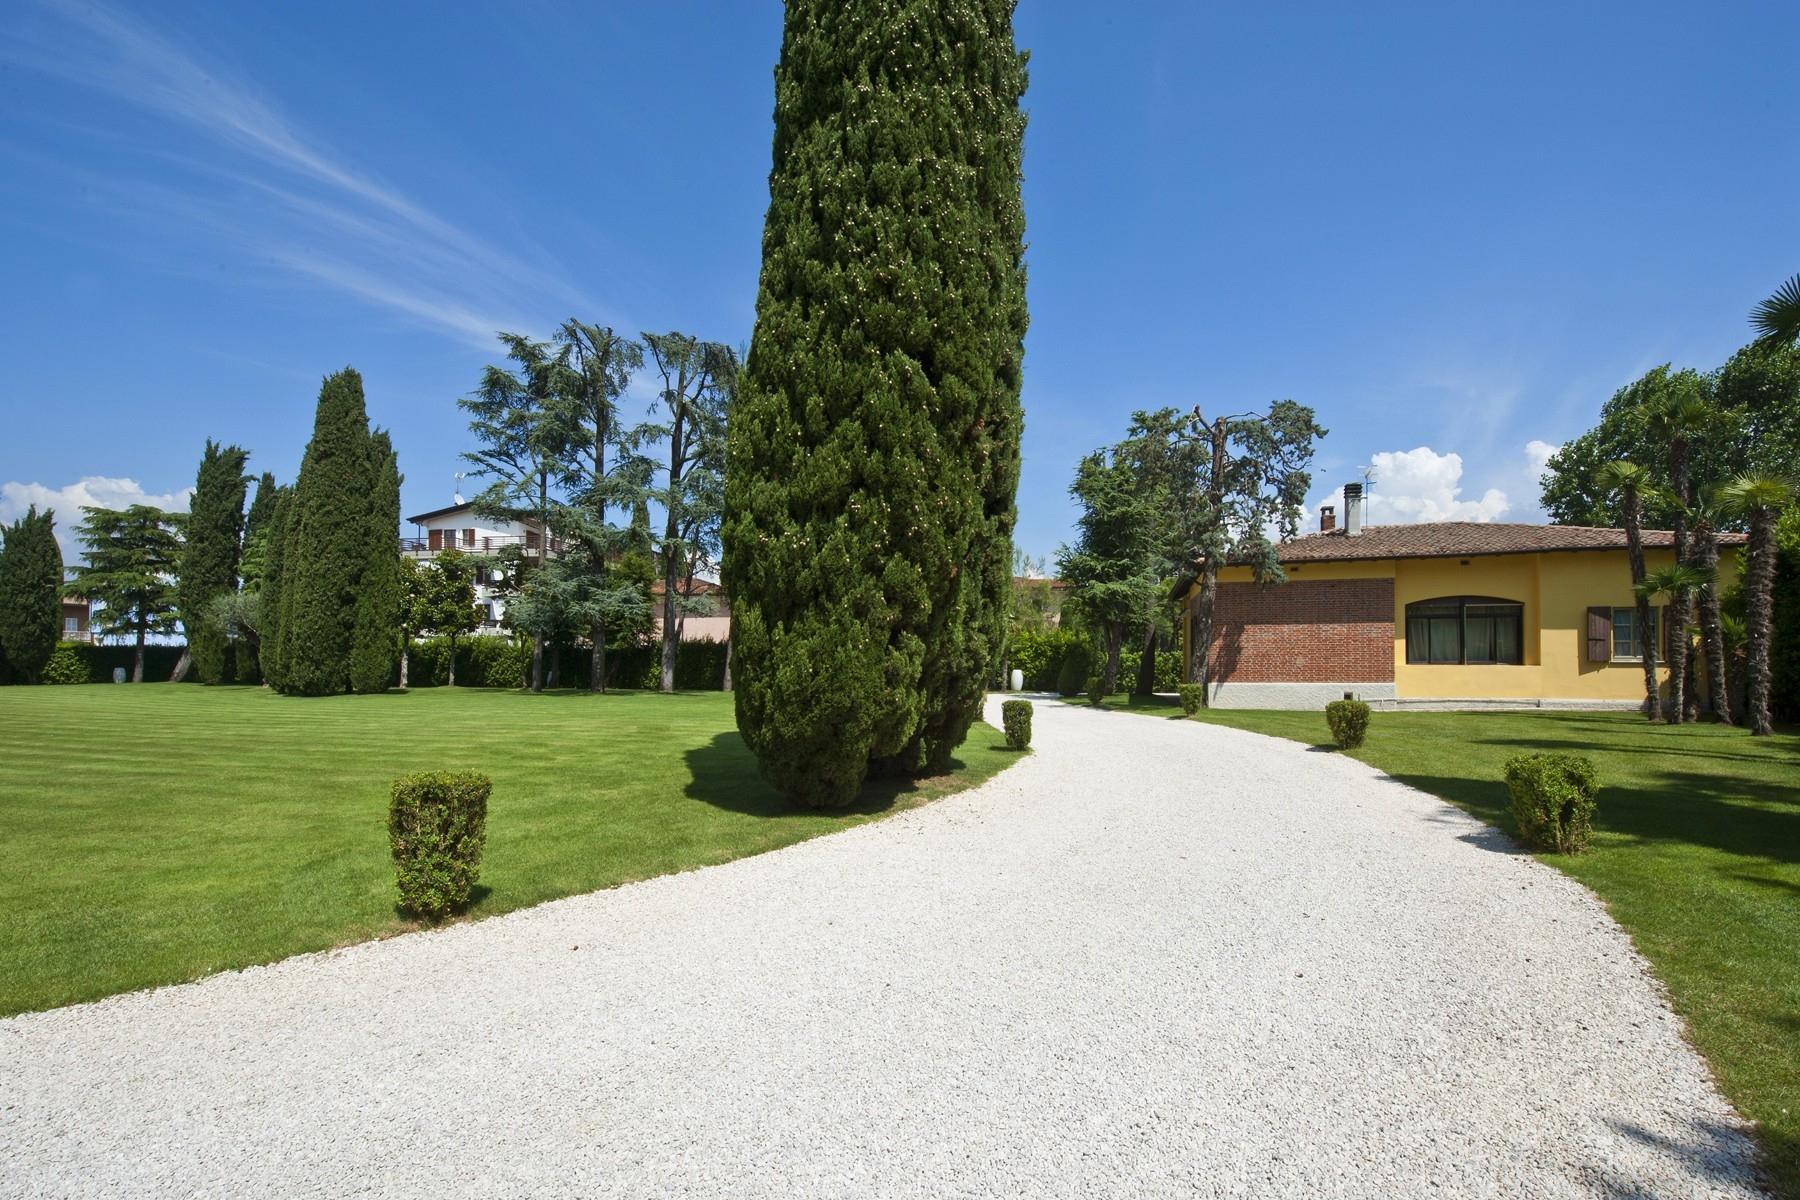 One of a kind Pieds dans l'eau villa with beach and dock in Sirmione - 17